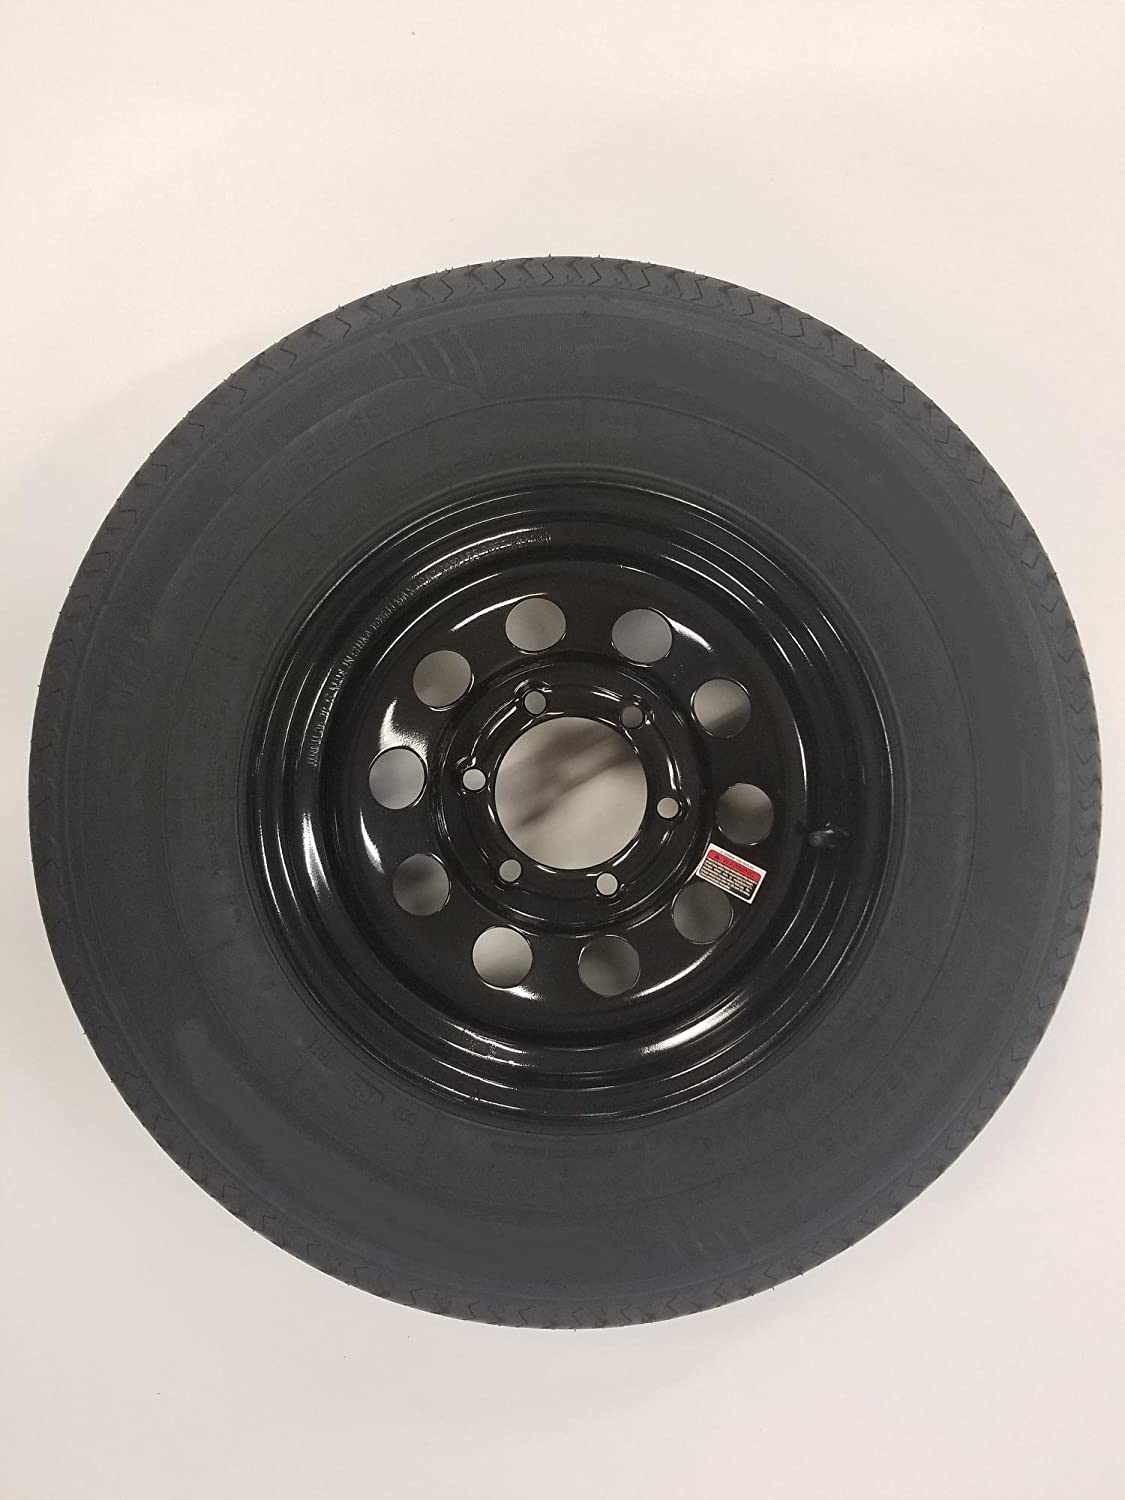 15 Black Mod Trailer Wheel 6 Lug with Radial ST225/75R15 Tire Mounted (6x5.5) Bolt Circle Wheels Express Inc